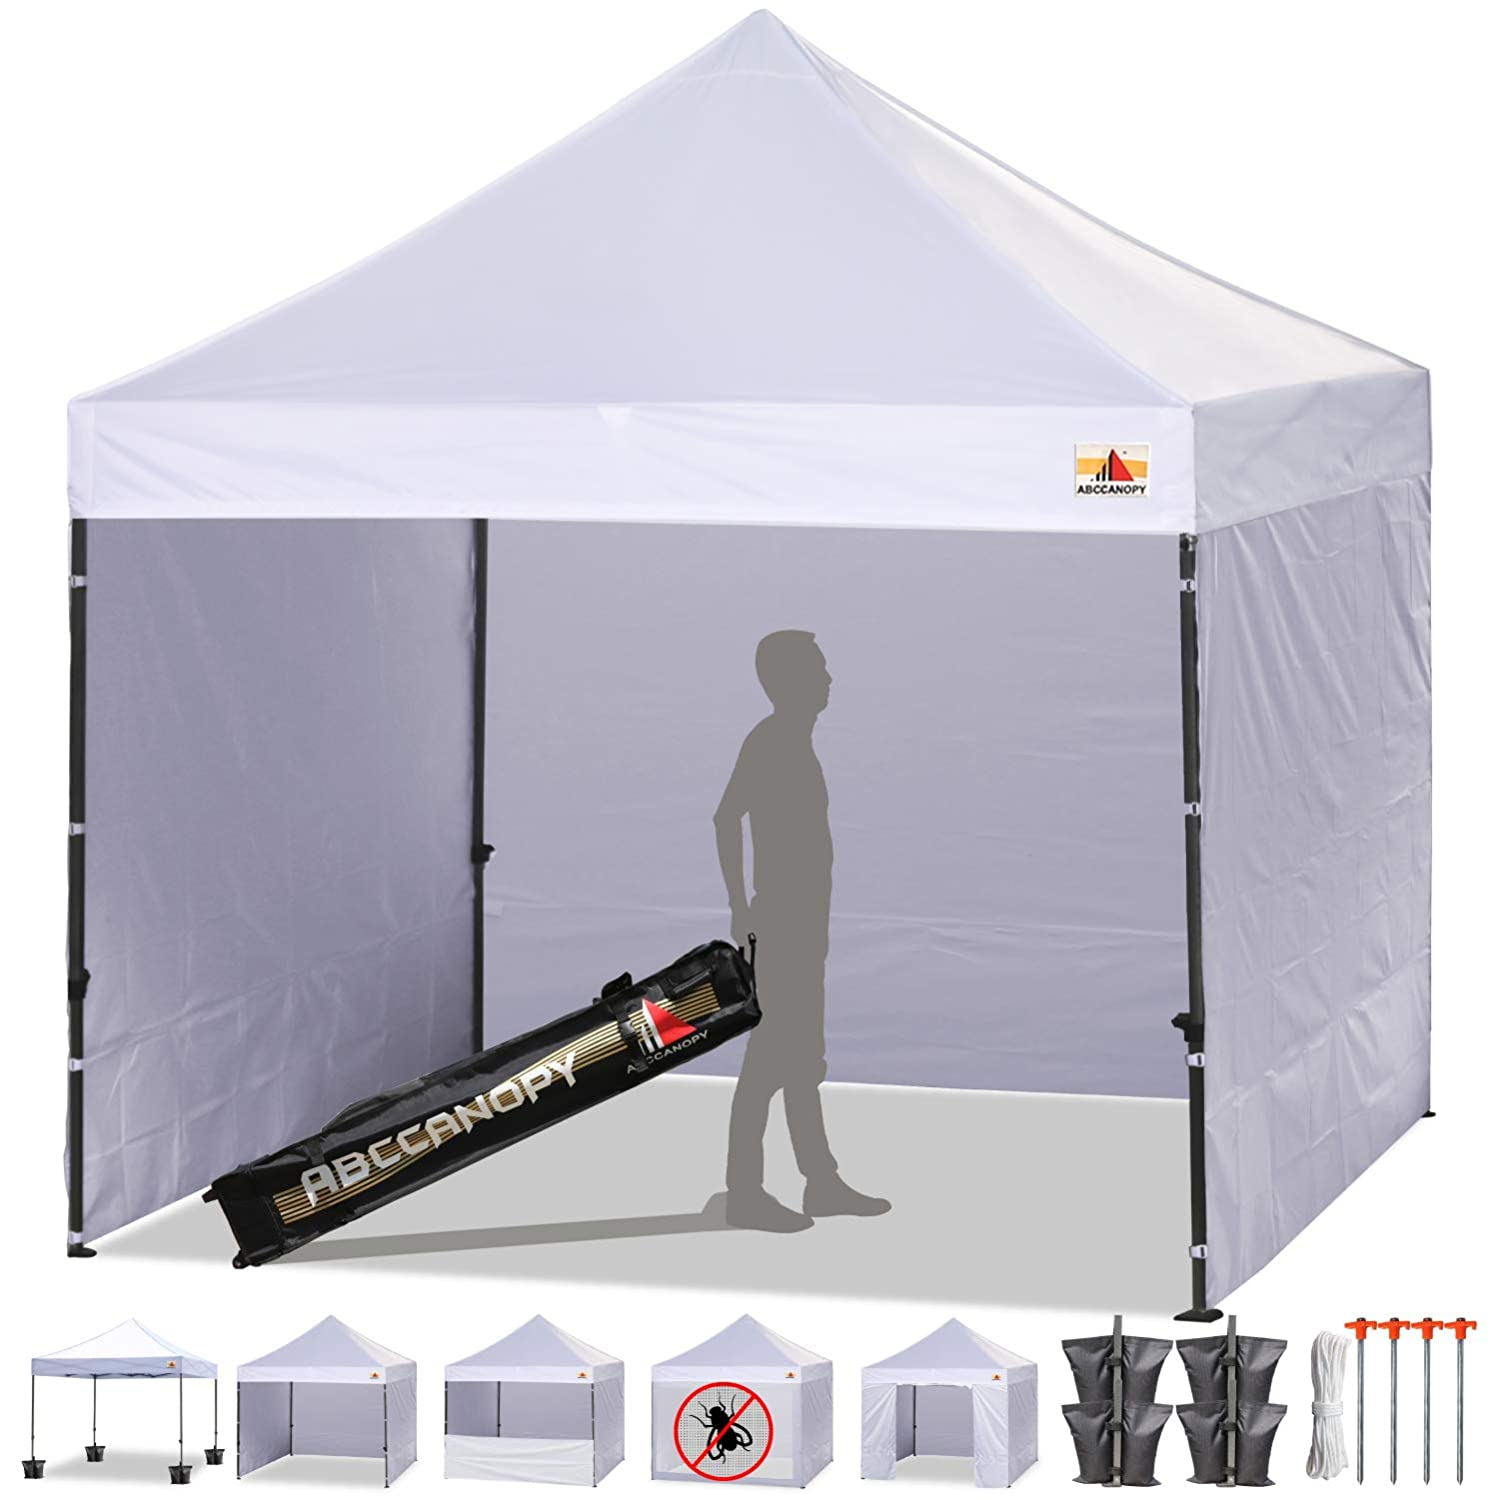 ABCCANOPY Canopy Tent Popup Canopy 10×10 Pop Up Canopies Commercial Tents Market stall with 6 Removable Sidewalls and Roller Bag Bonus 4 Weight Bags and 10ft Screen Netting and Half Wall, White